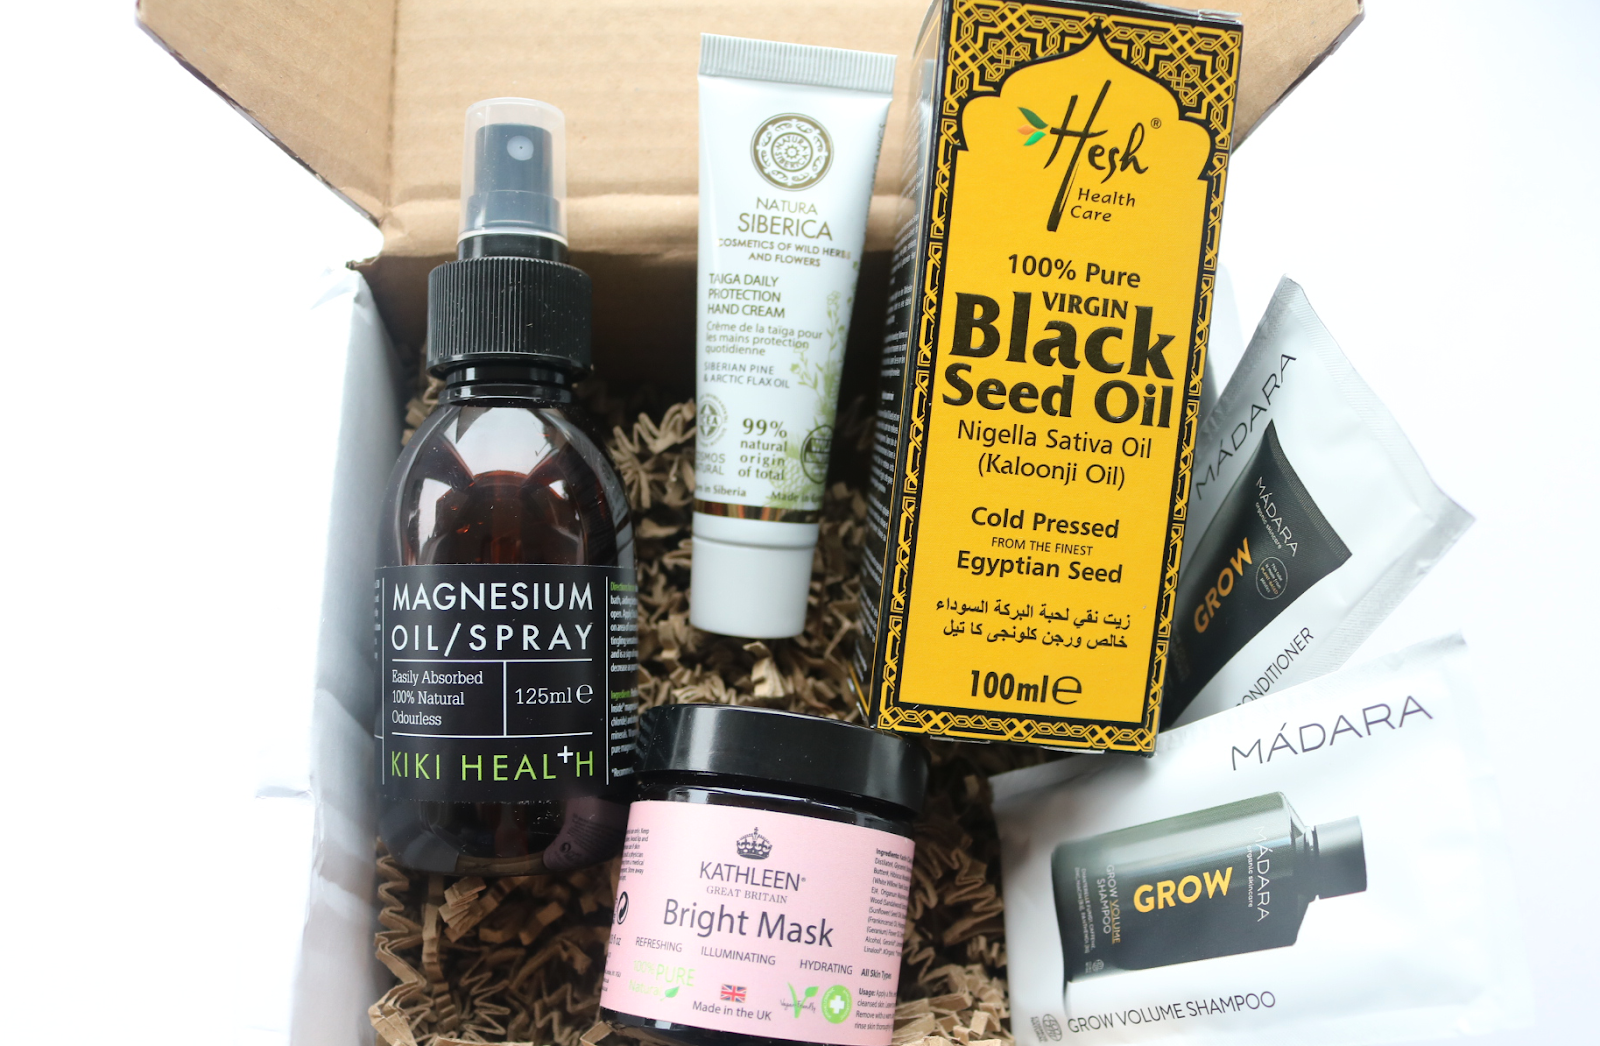 Green Beauty: LoveLula Beauty Box - January 2020 review